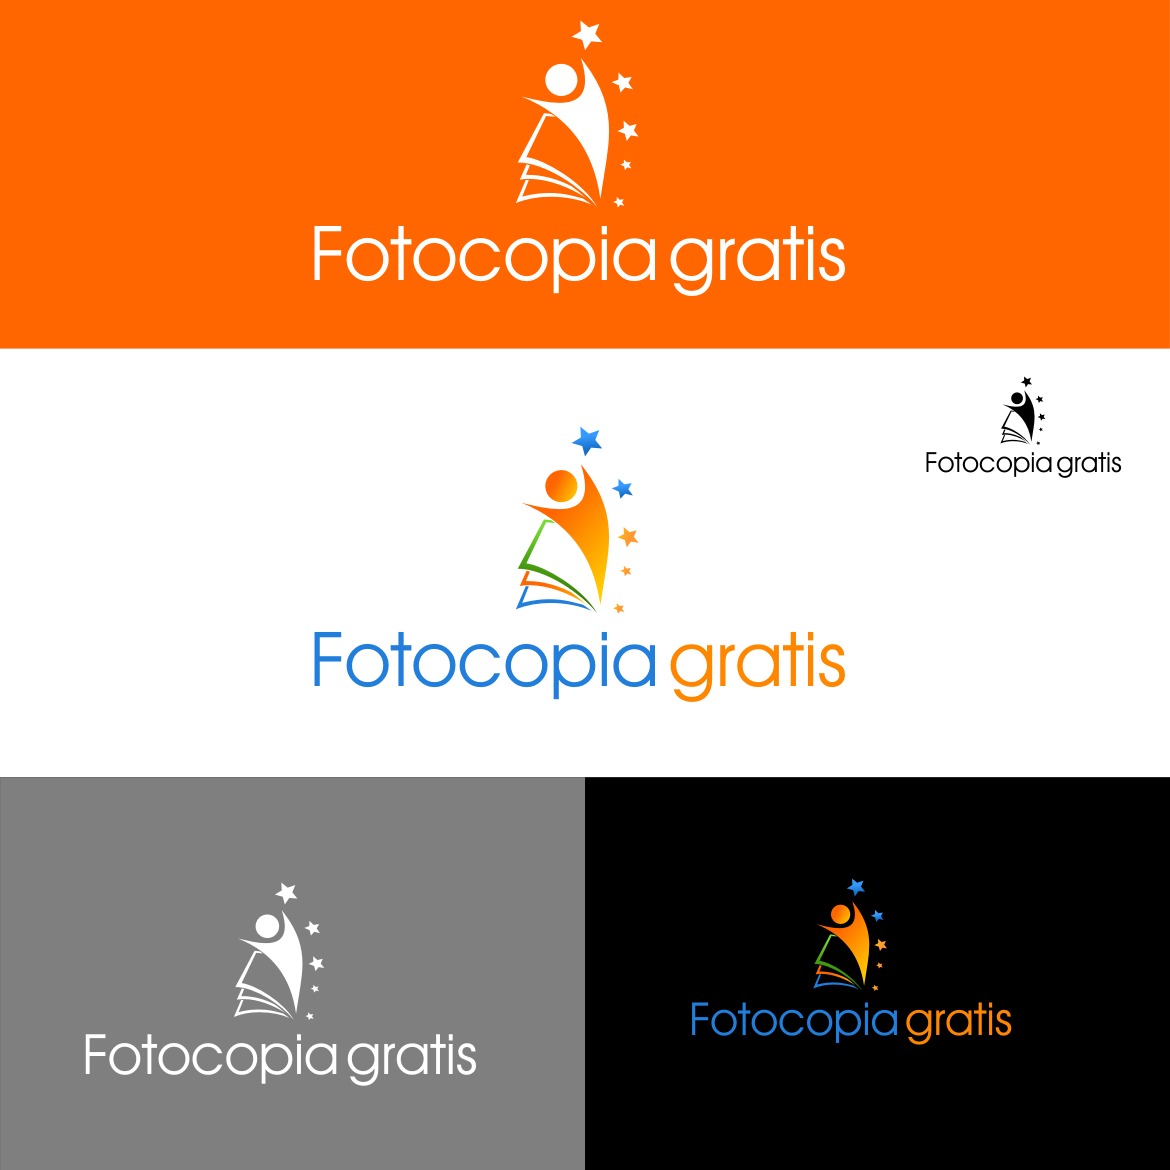 Logo Design by rifatz - Entry No. 100 in the Logo Design Contest Inspiring Logo Design for Fotocopiagratis.